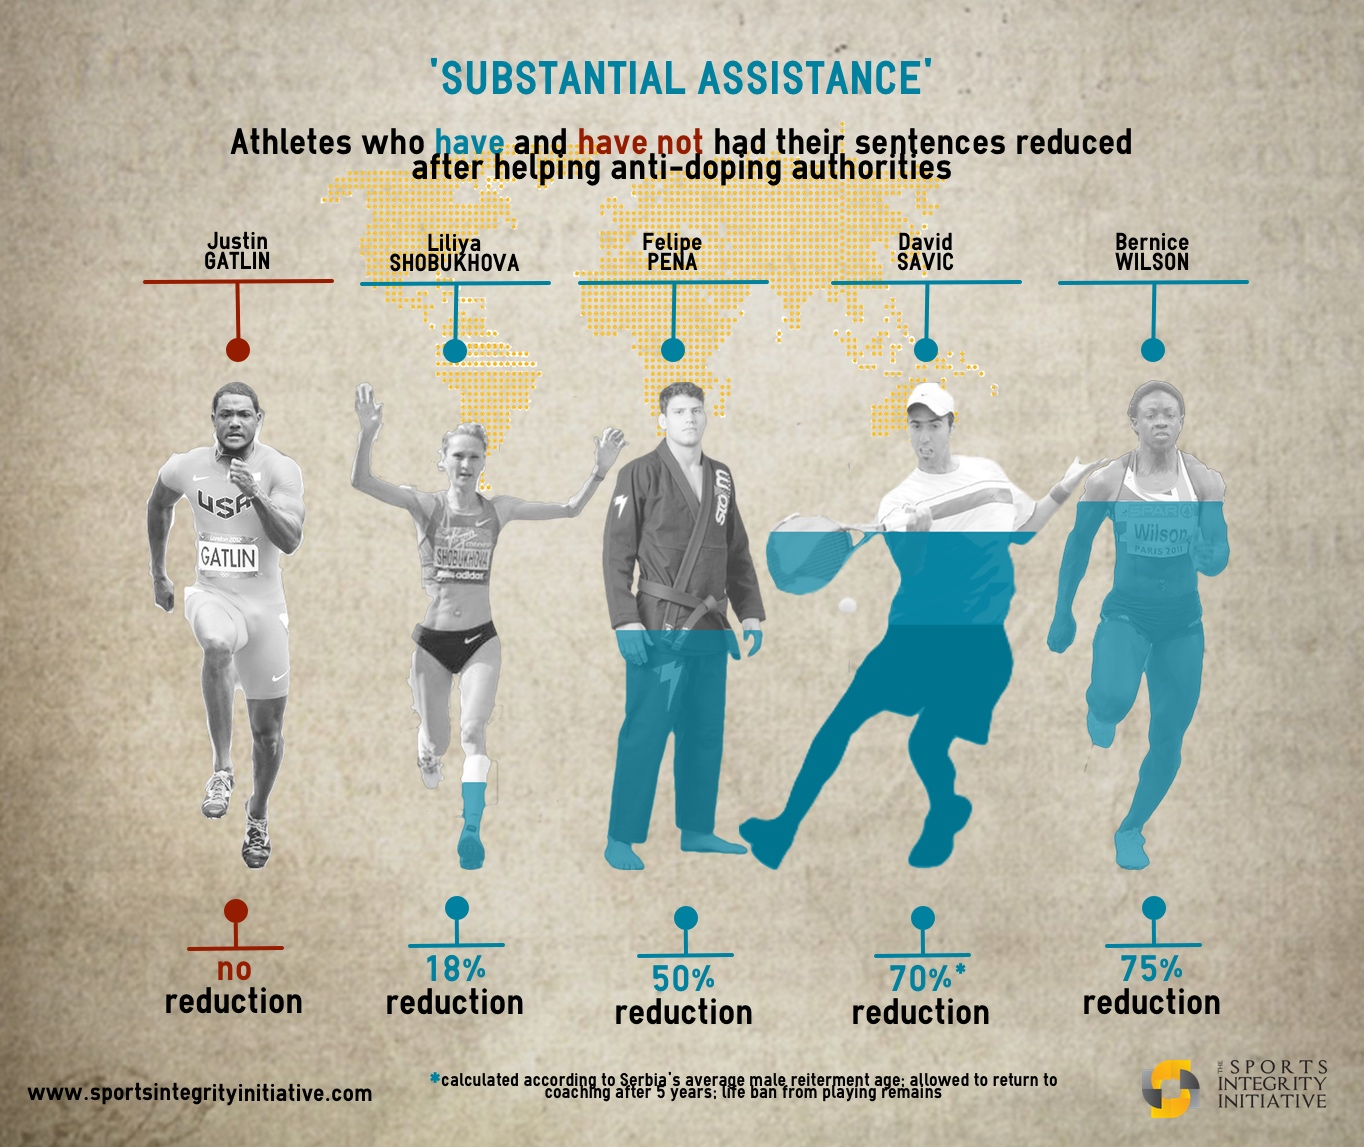 SubstantialAssistance